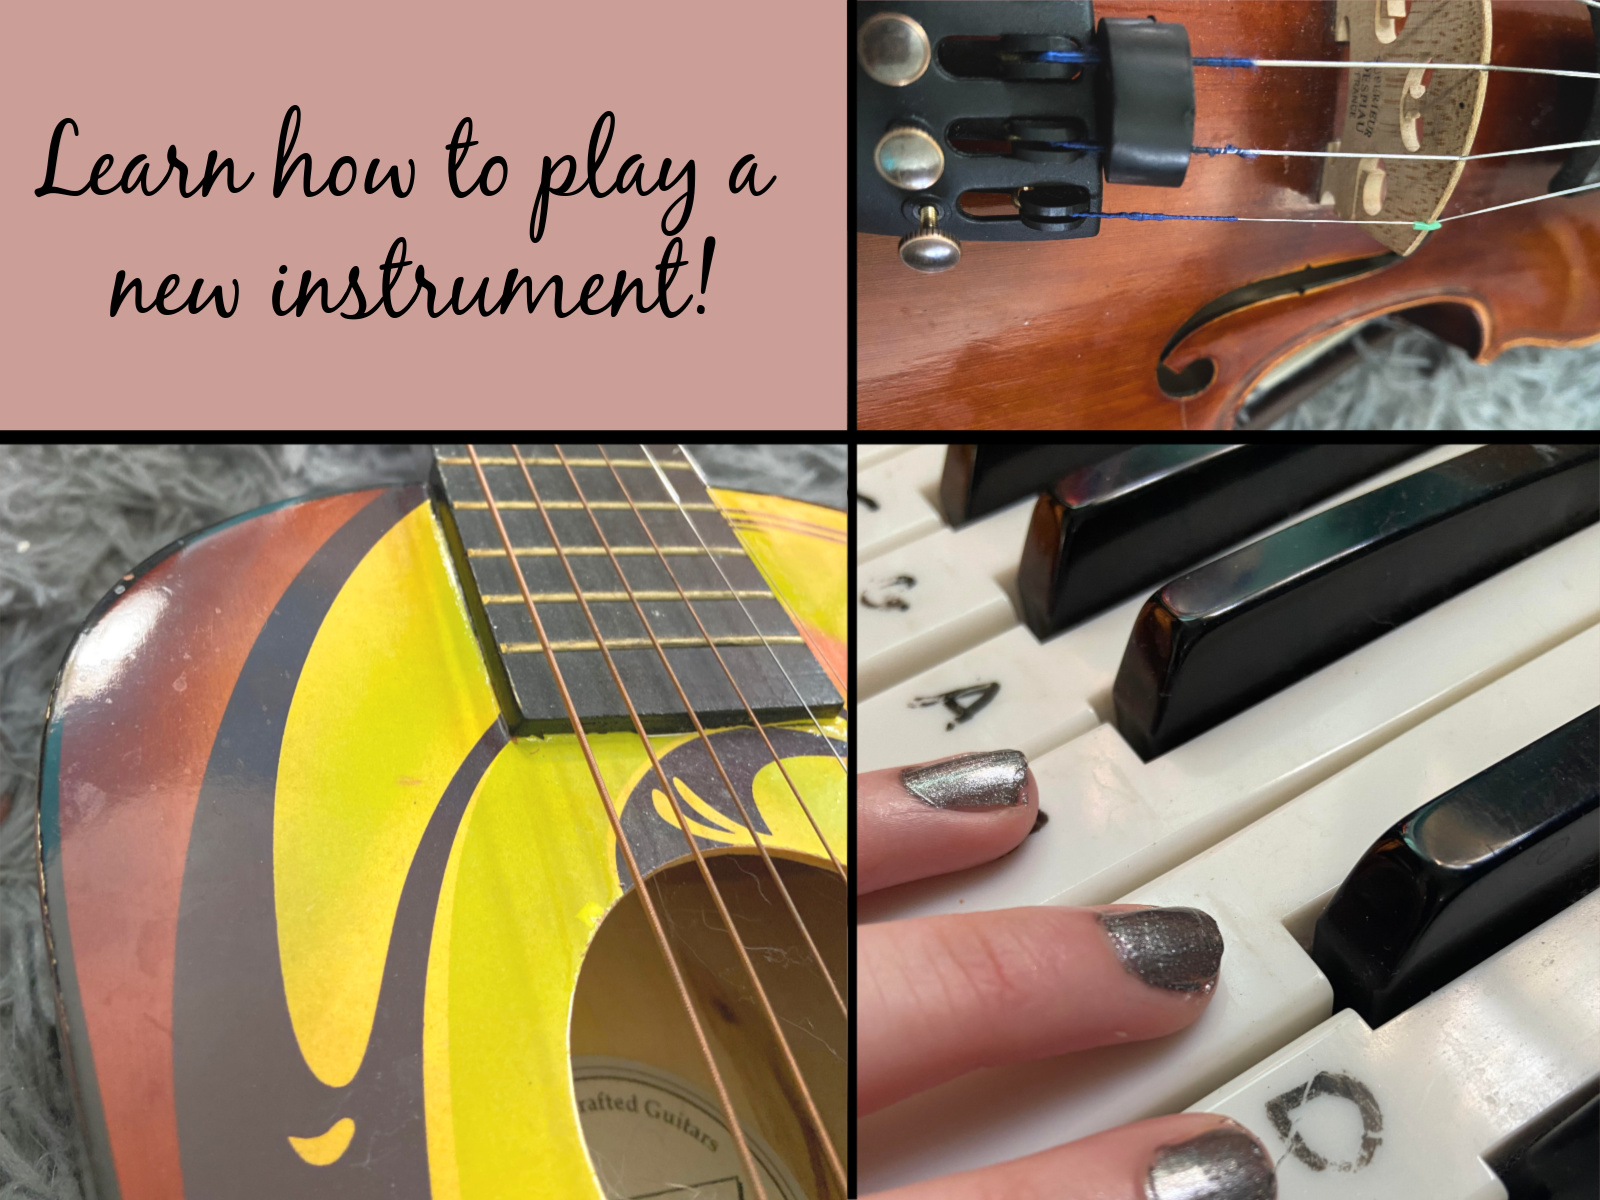 Images of instruments to learn during your stay at home time